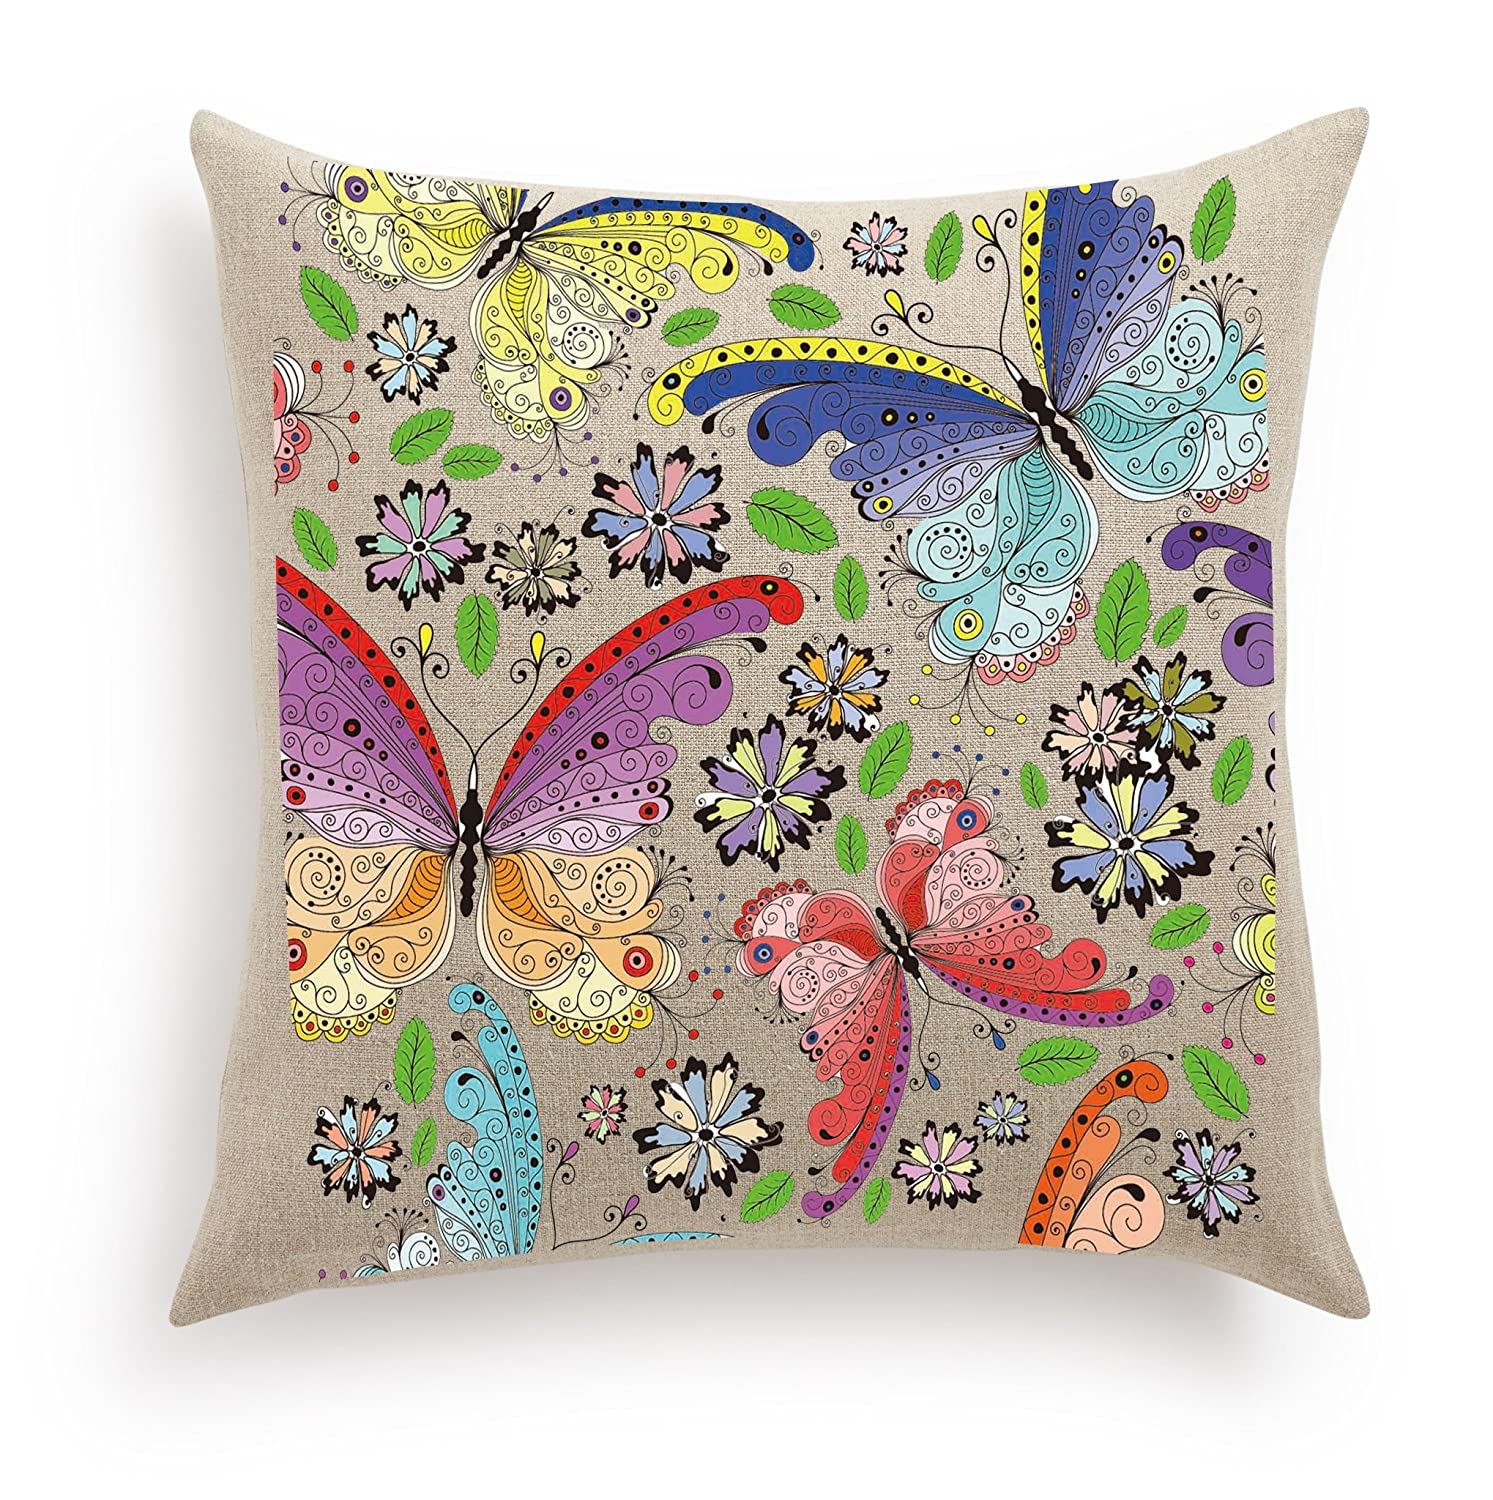 Haute Art Designs Decorative Diy Pillow Cover With 12 Paint Tubes And Brush Butterflies